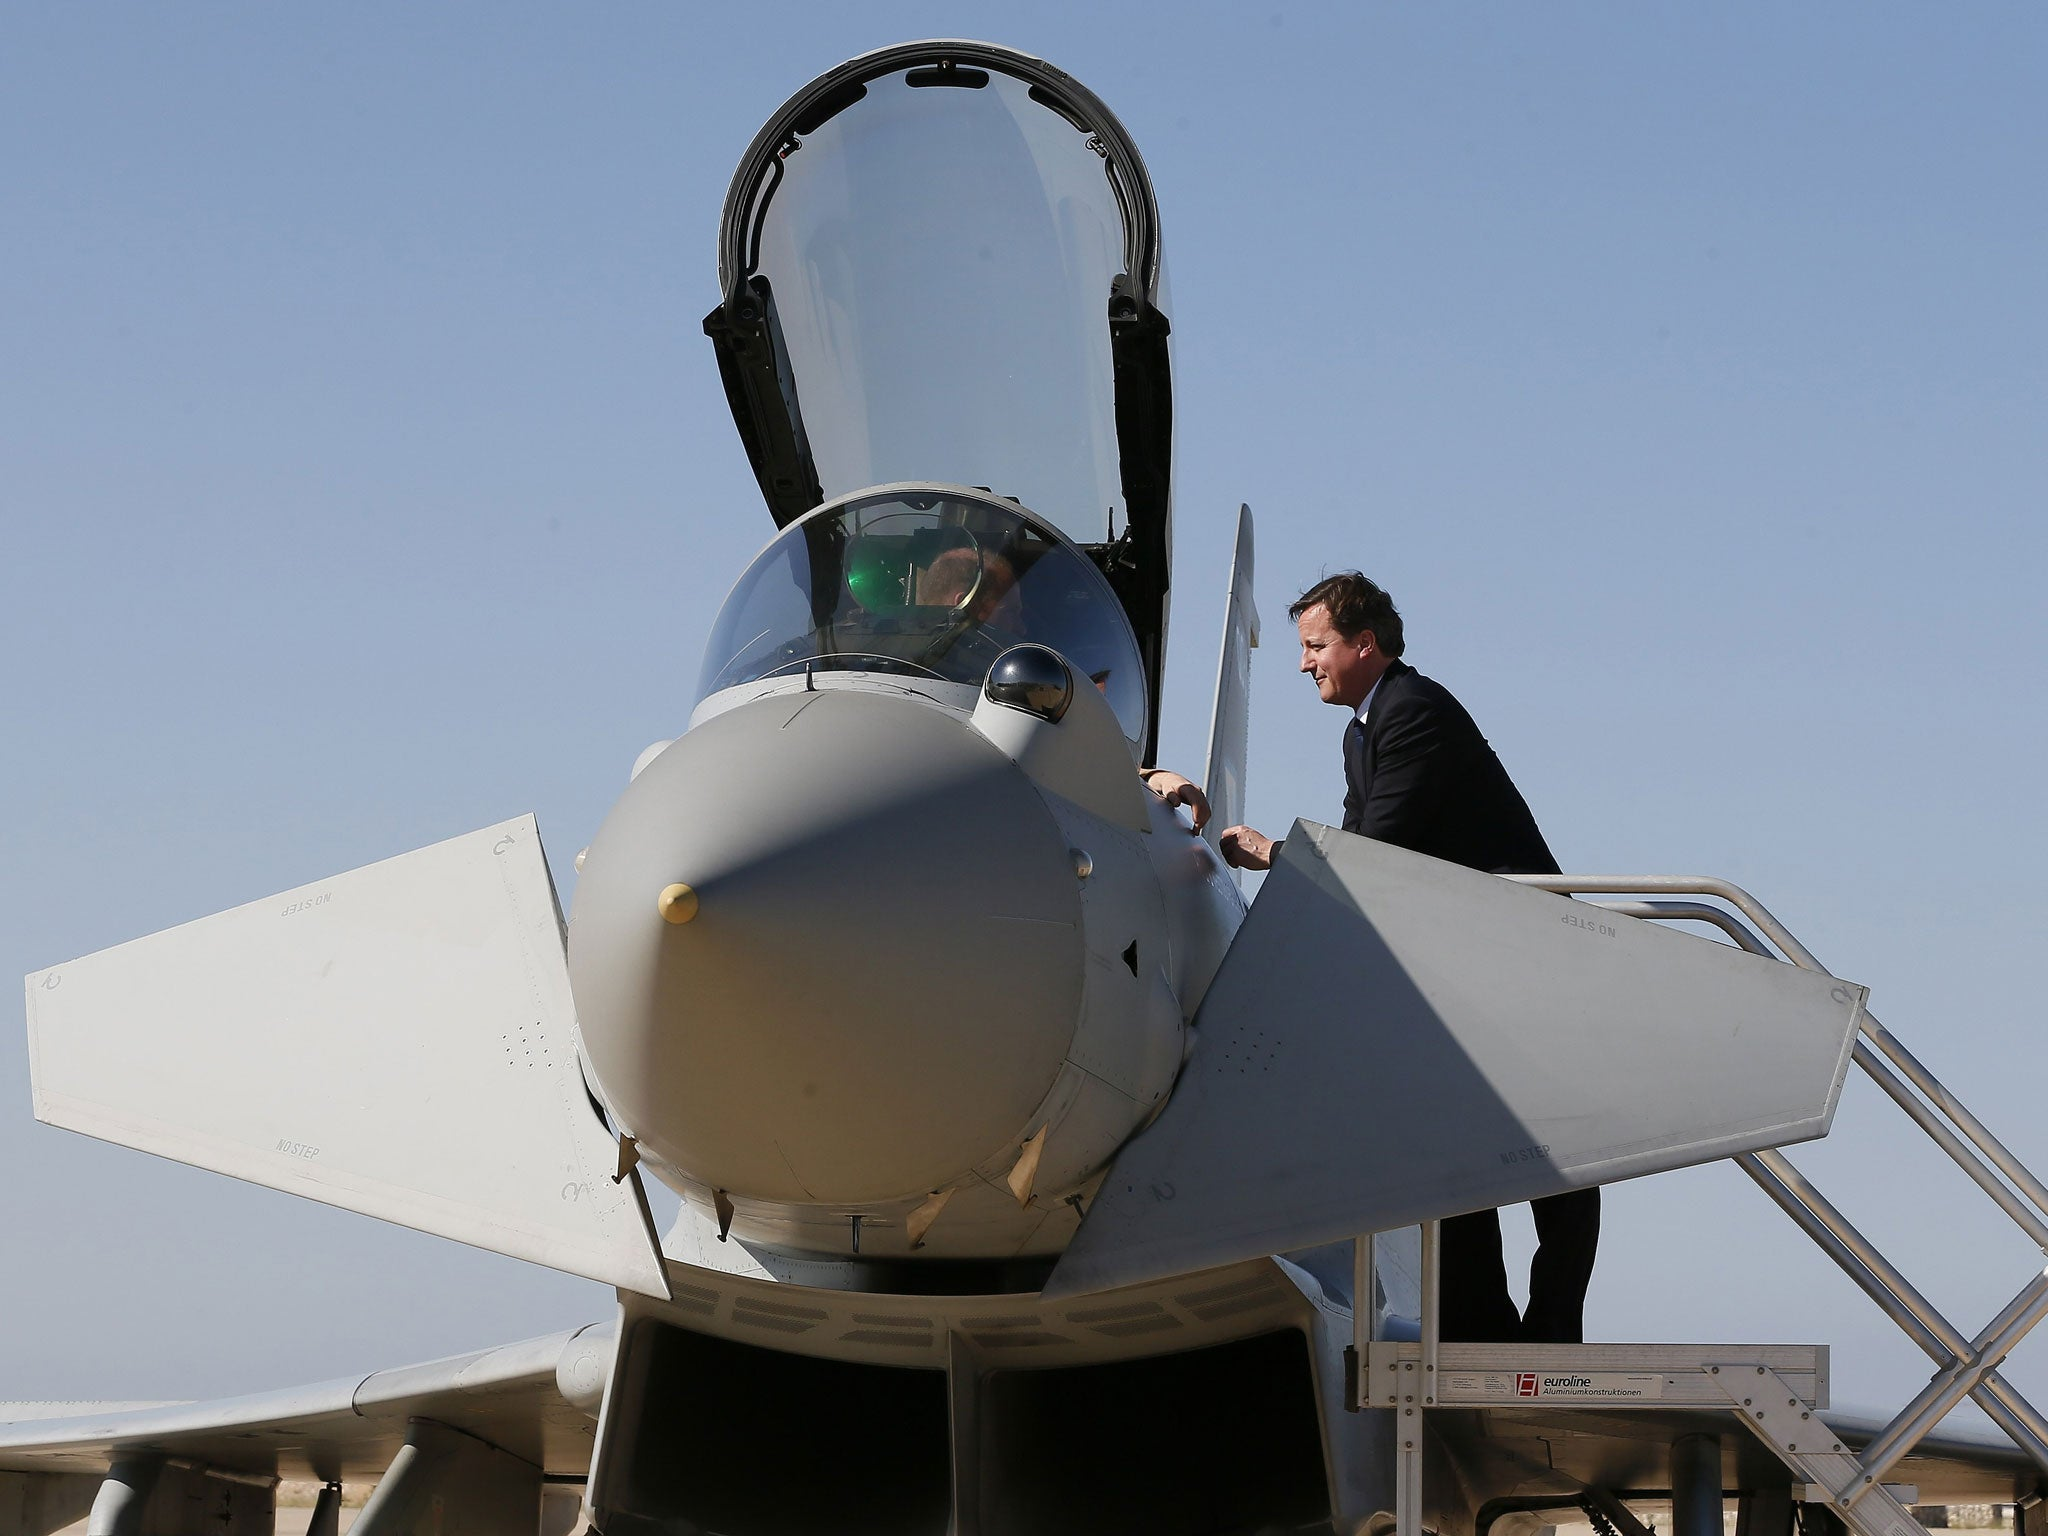 Fighter Aircraft - latest news, breaking stories and comment - The